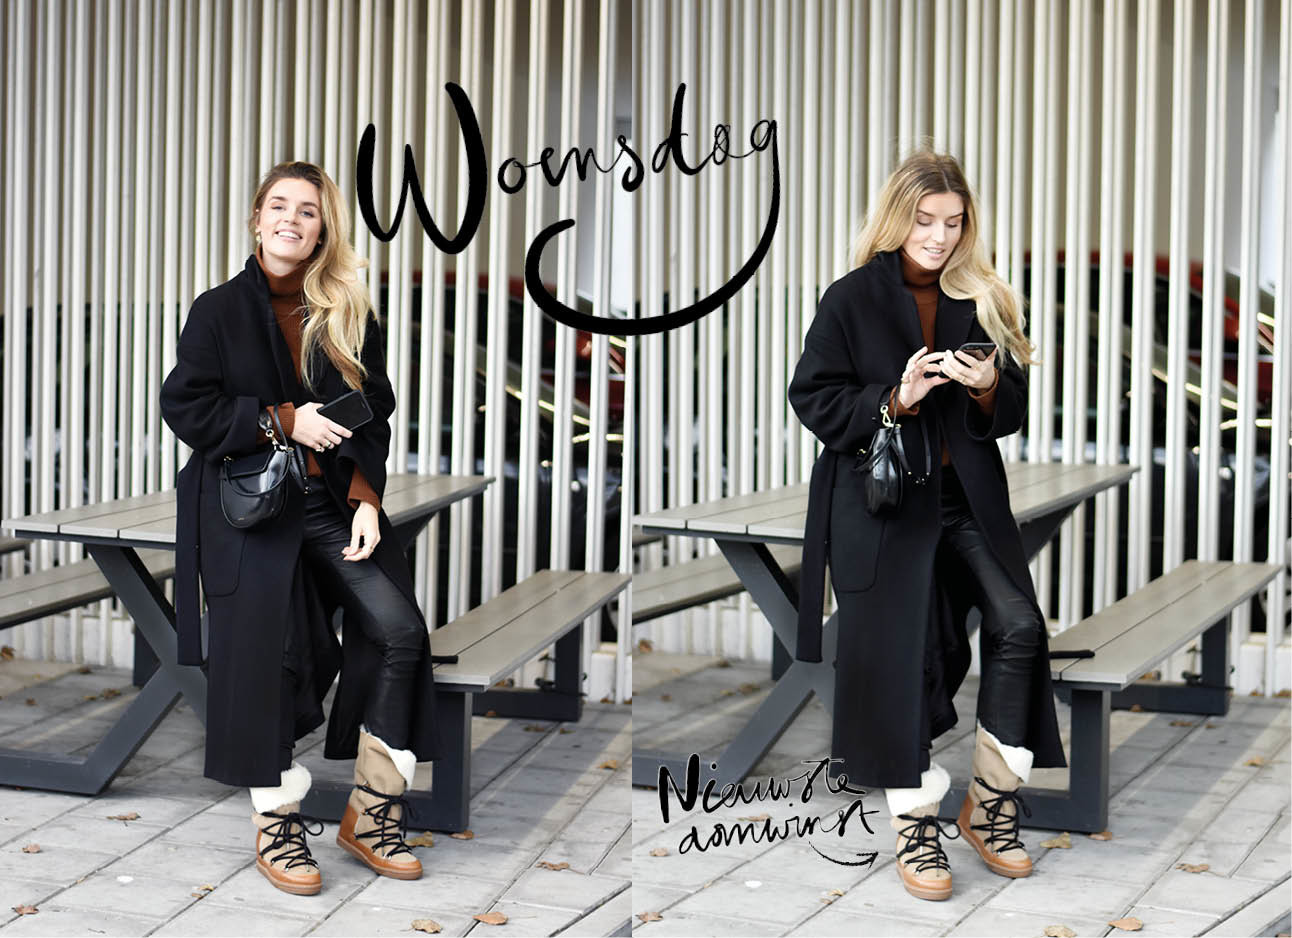 Lotte van Scherpenzeel zwarte jas isabel marant shoes en wandler bag look of the day